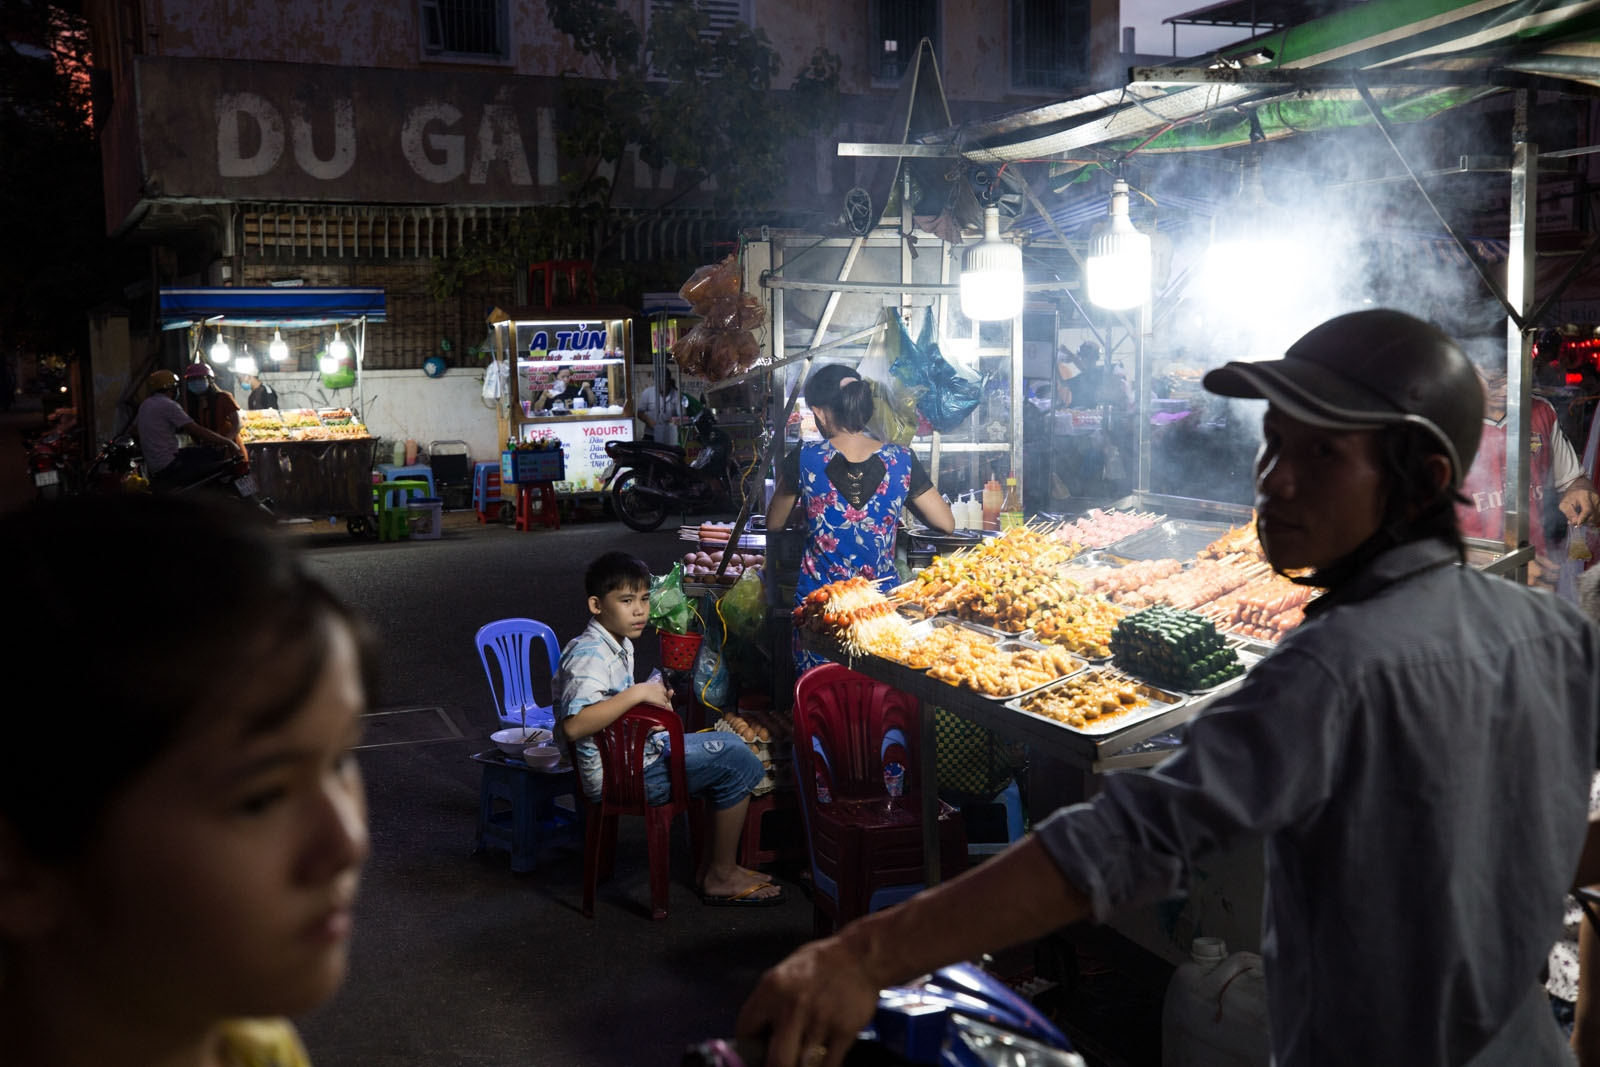 At an evening food market in Can Tho city, customers arrive on motorbikes to buy freshly made food. This growing affluence in the Delta has led to an increase in the demand for electricity which in turn has led to ill-conceived development projects to try to meet that demand, ultimately putting increasing pressure on the natural environment.